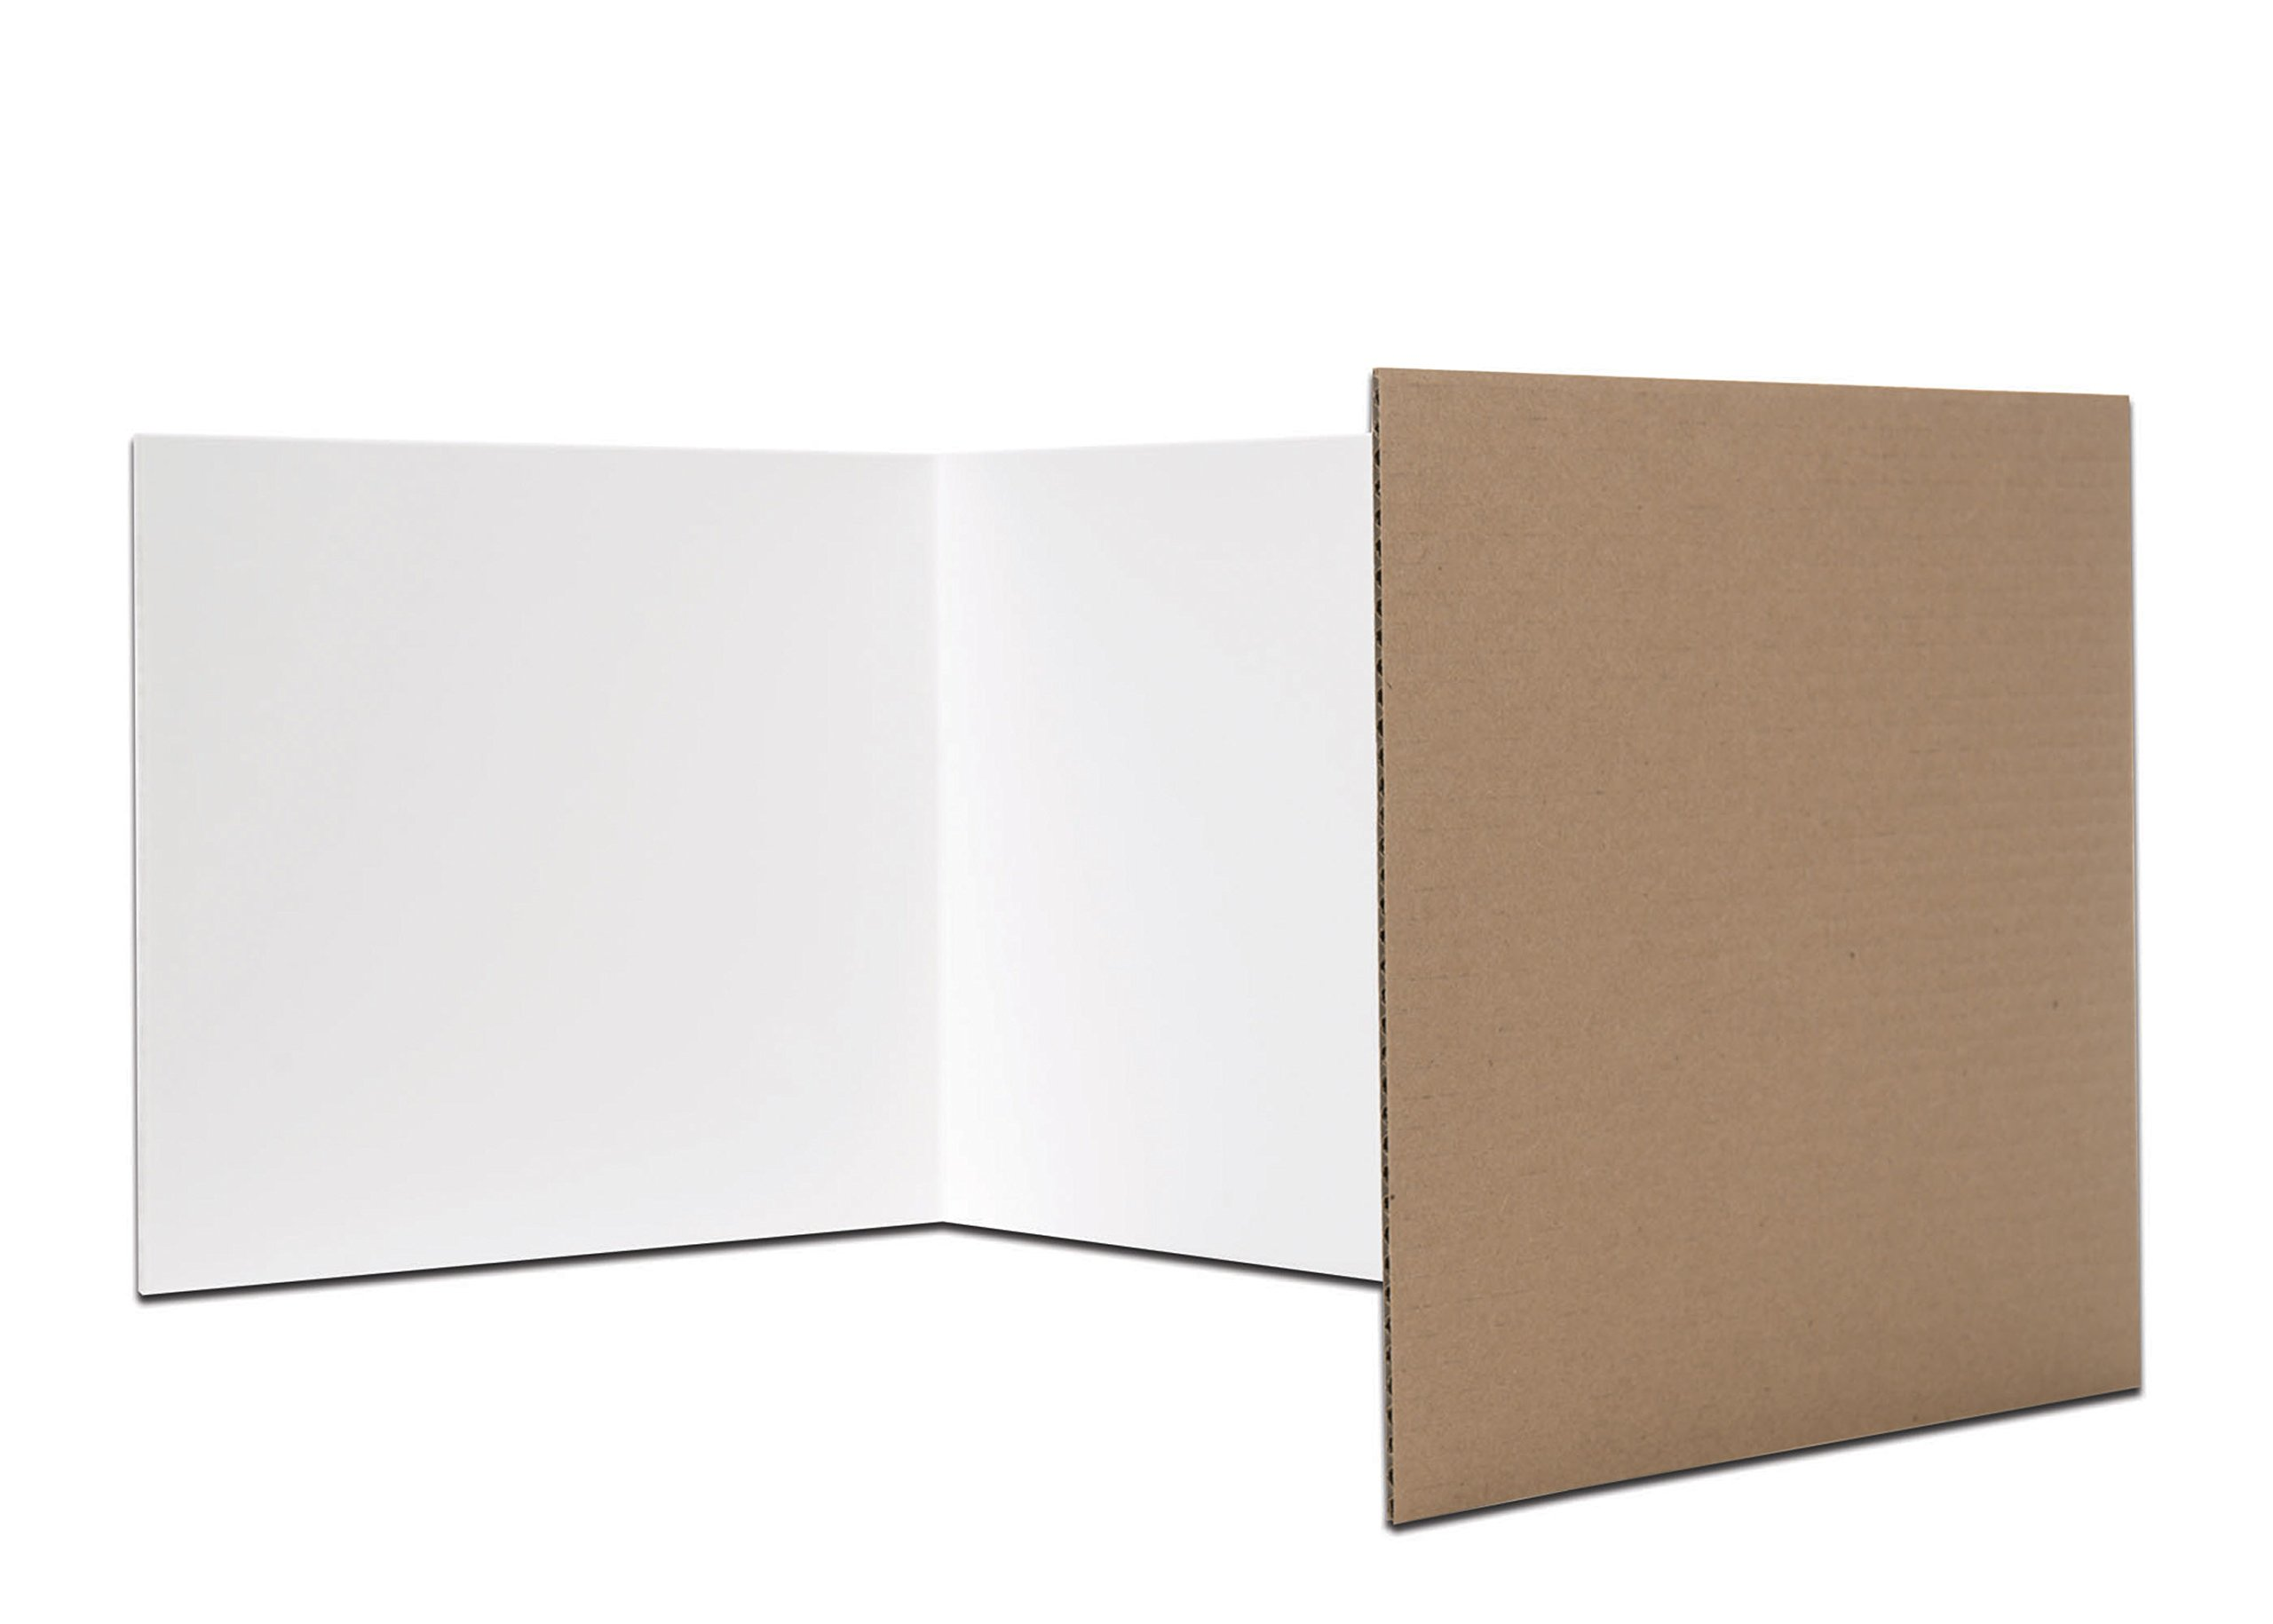 Flipside Products 61848 18'' x 48'' Privacy Shield, White (Pack of 24)